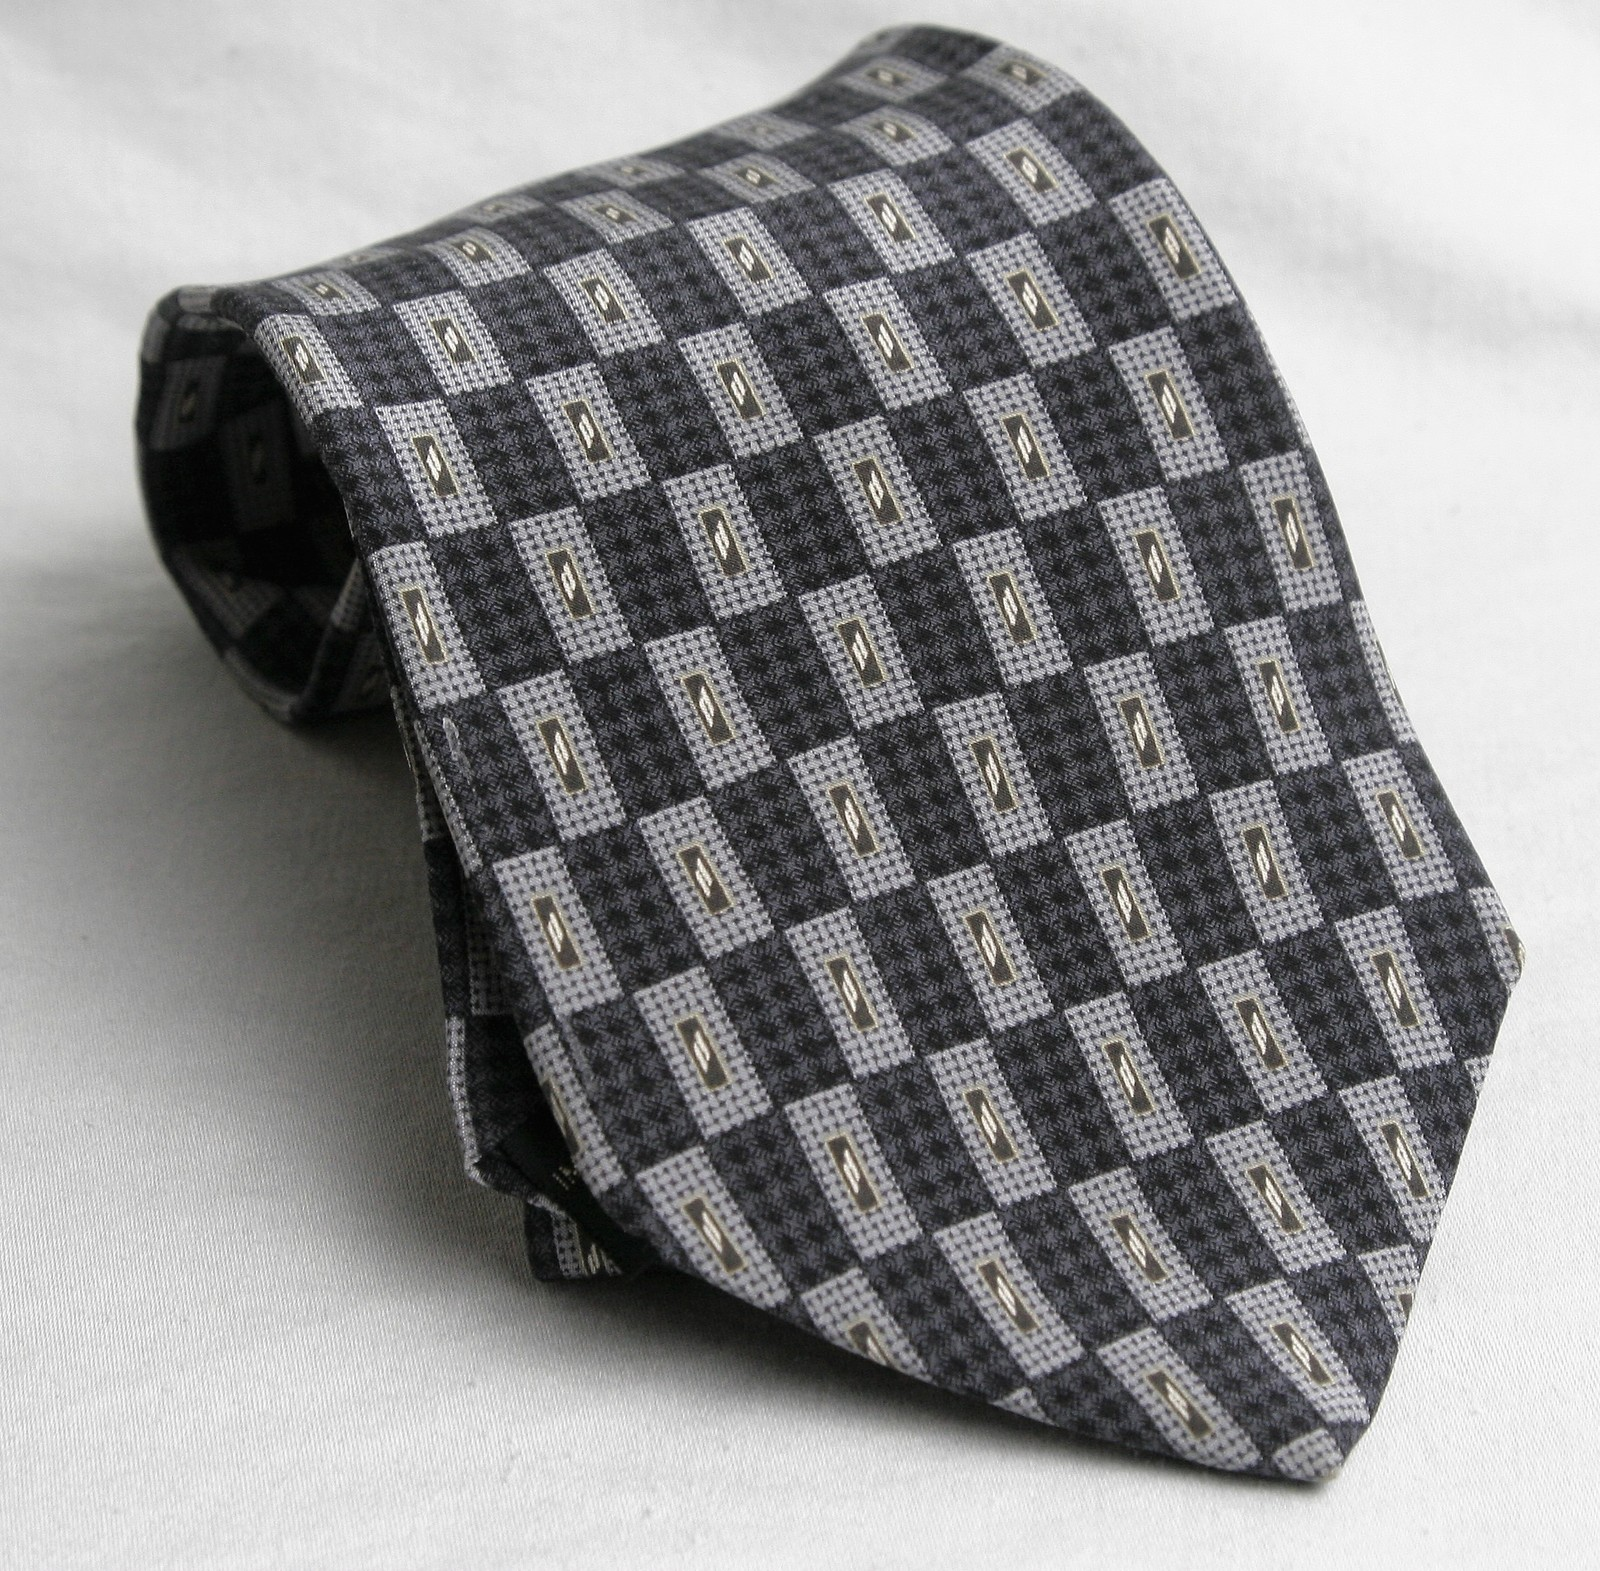 Kenneth Cole  Tie Necktie Geometeric Gray, White, Black Gold image 1